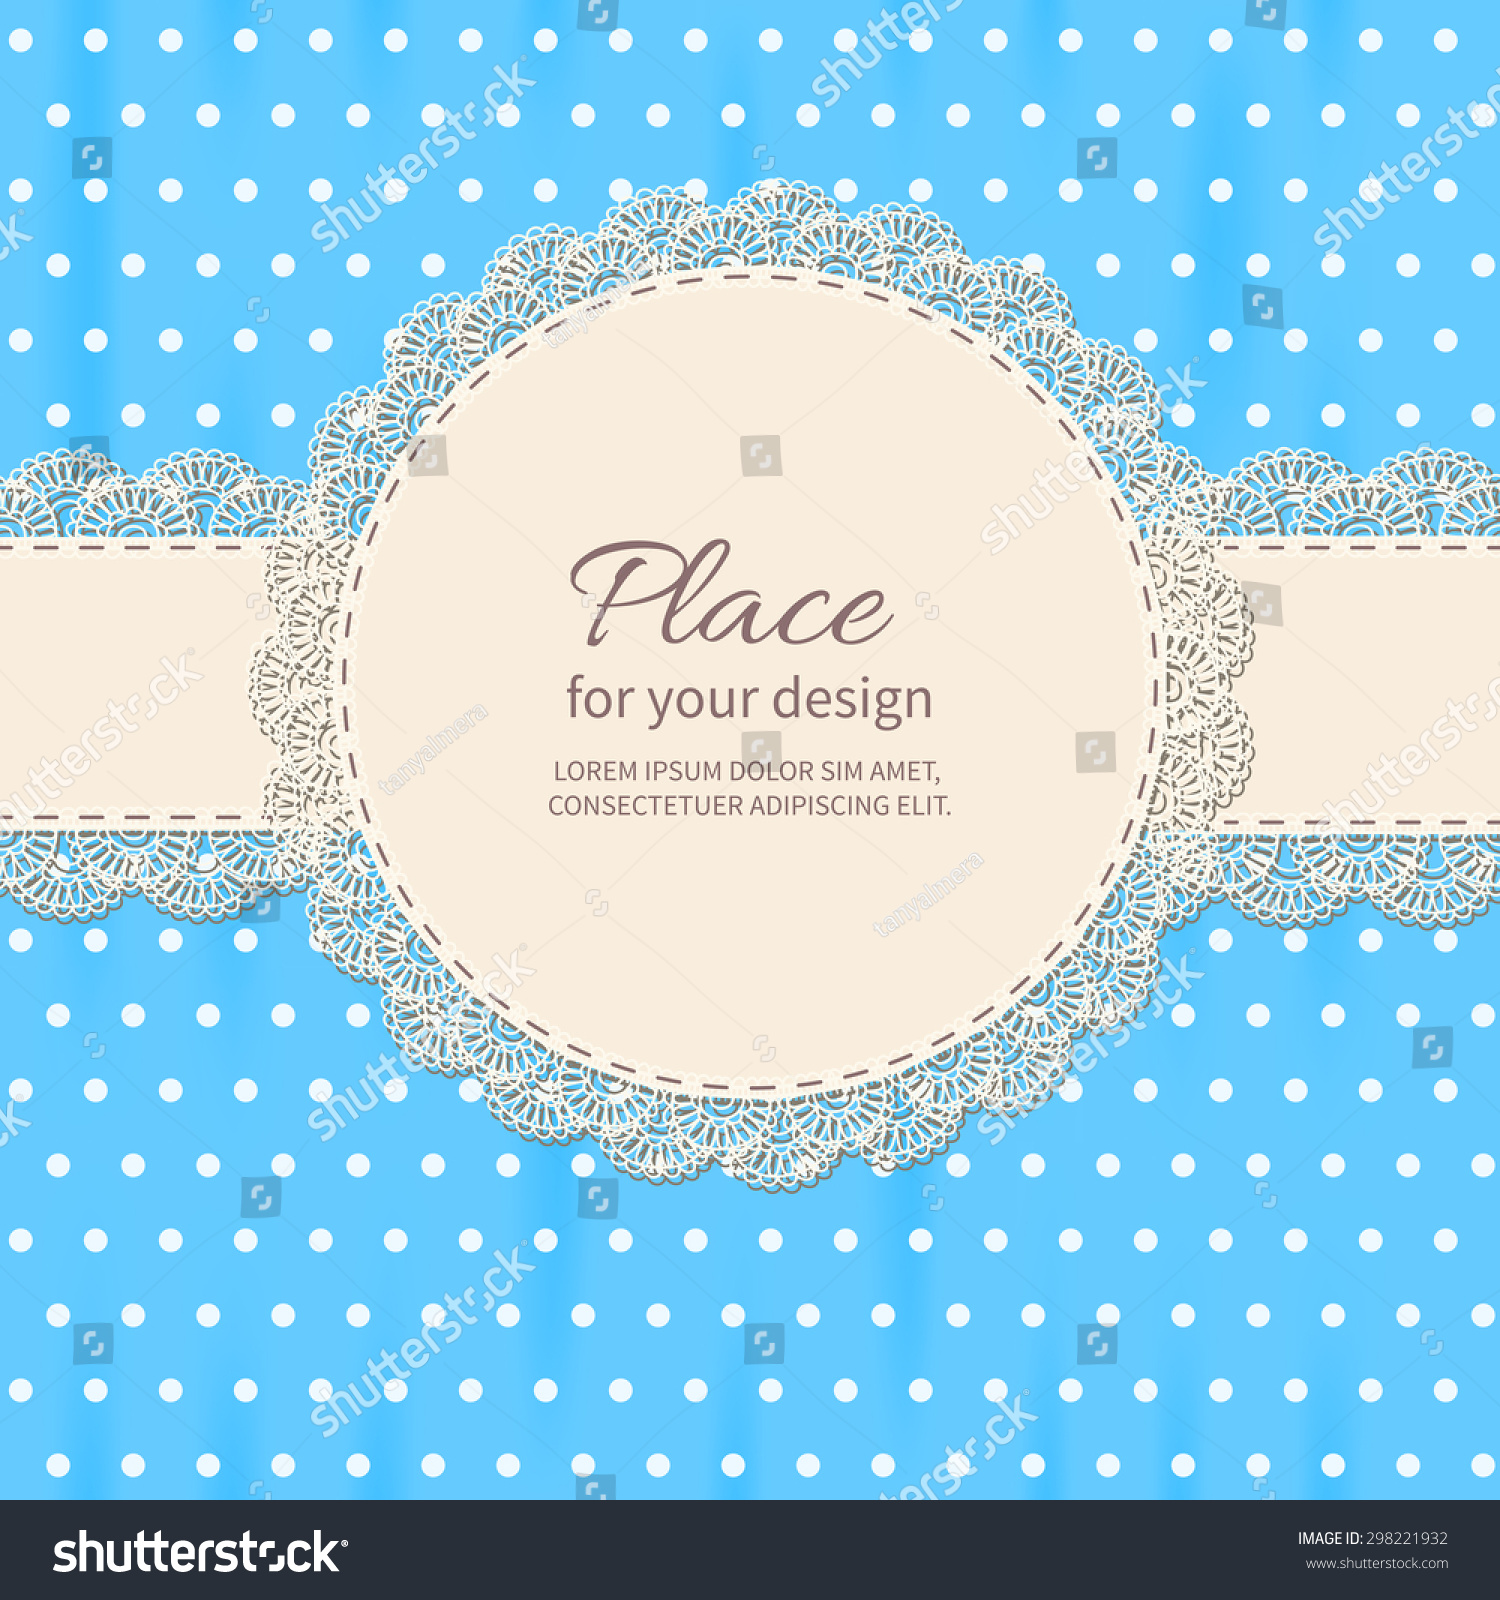 Retro Background Lace Polkadot Wallpaperbaby Shower Stock Vector